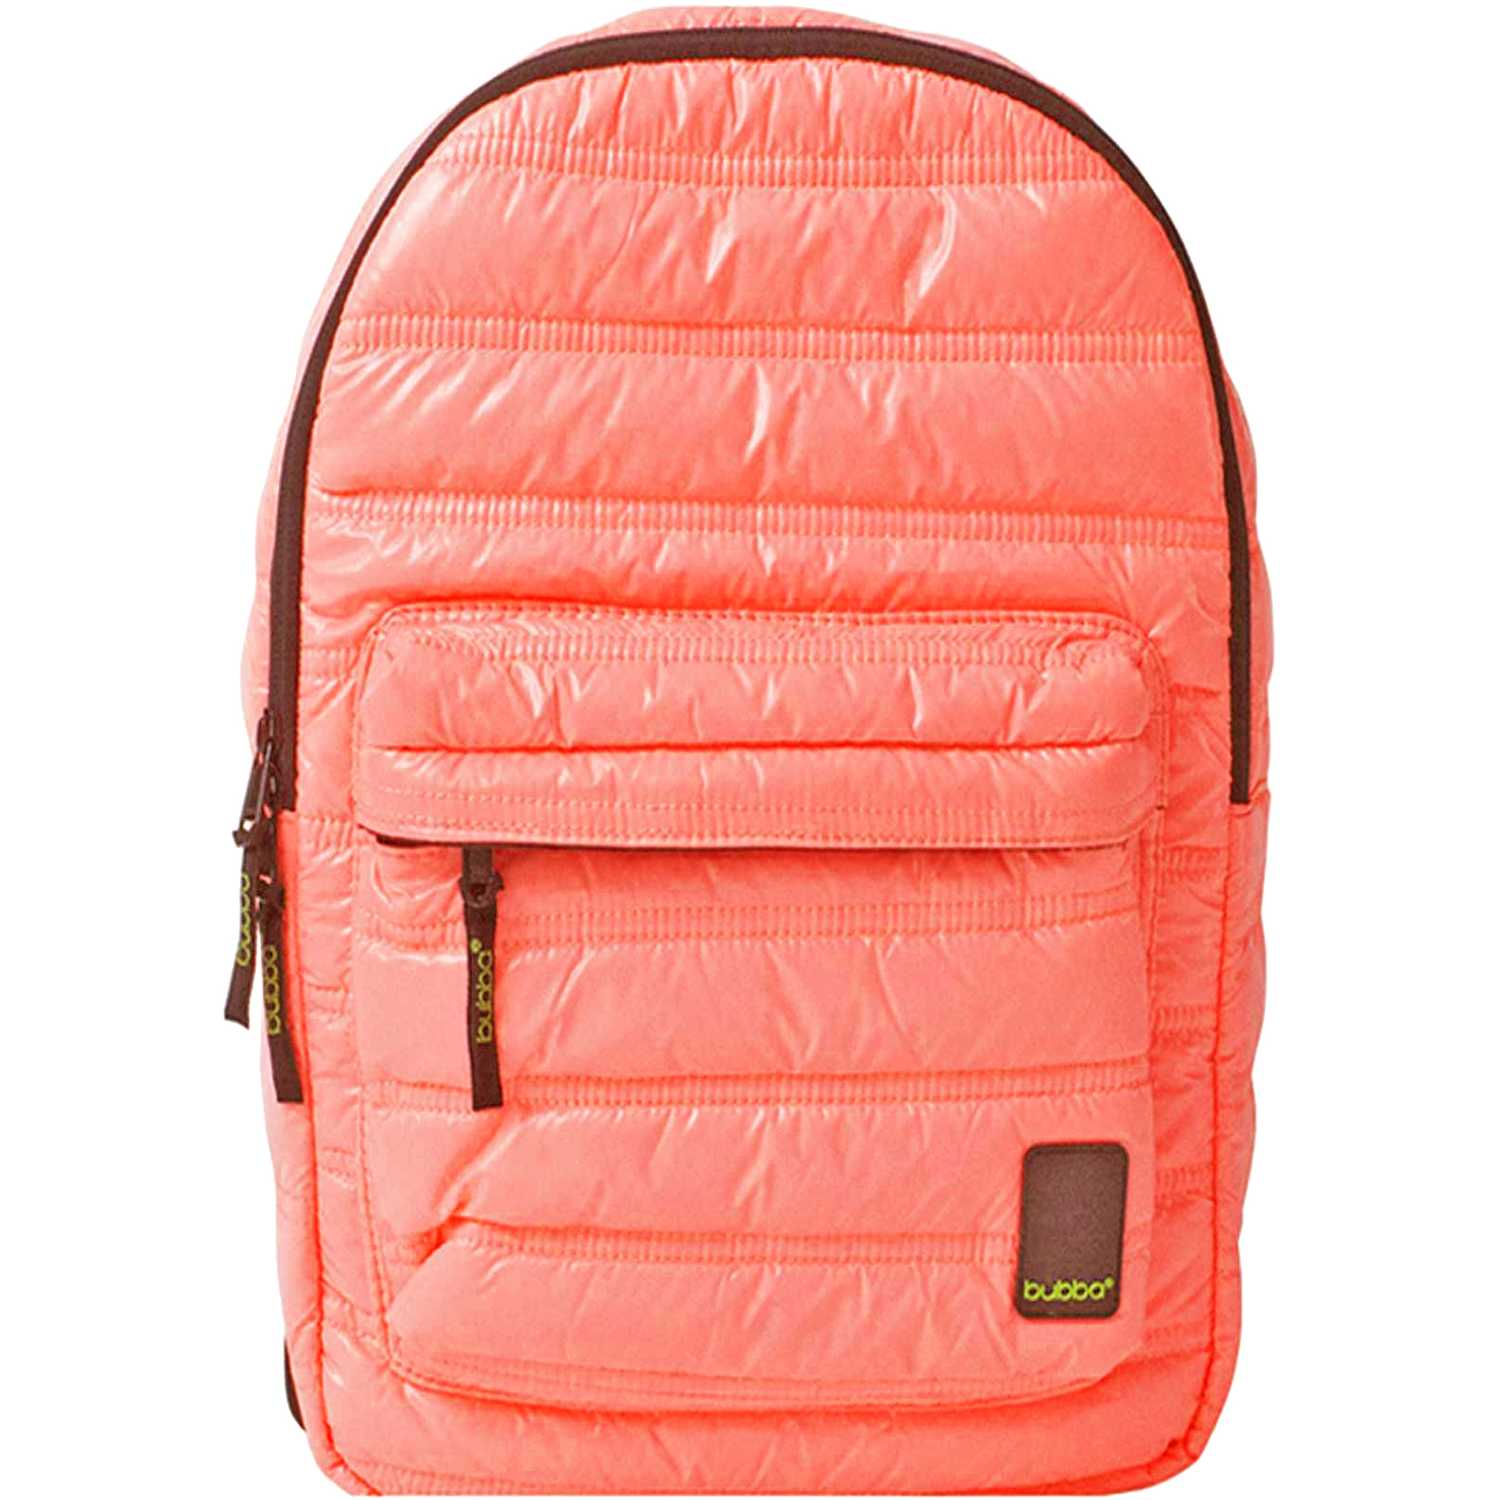 BUBBA Mochila Bubba Classic Regular Coral Mochilas multipropósitos